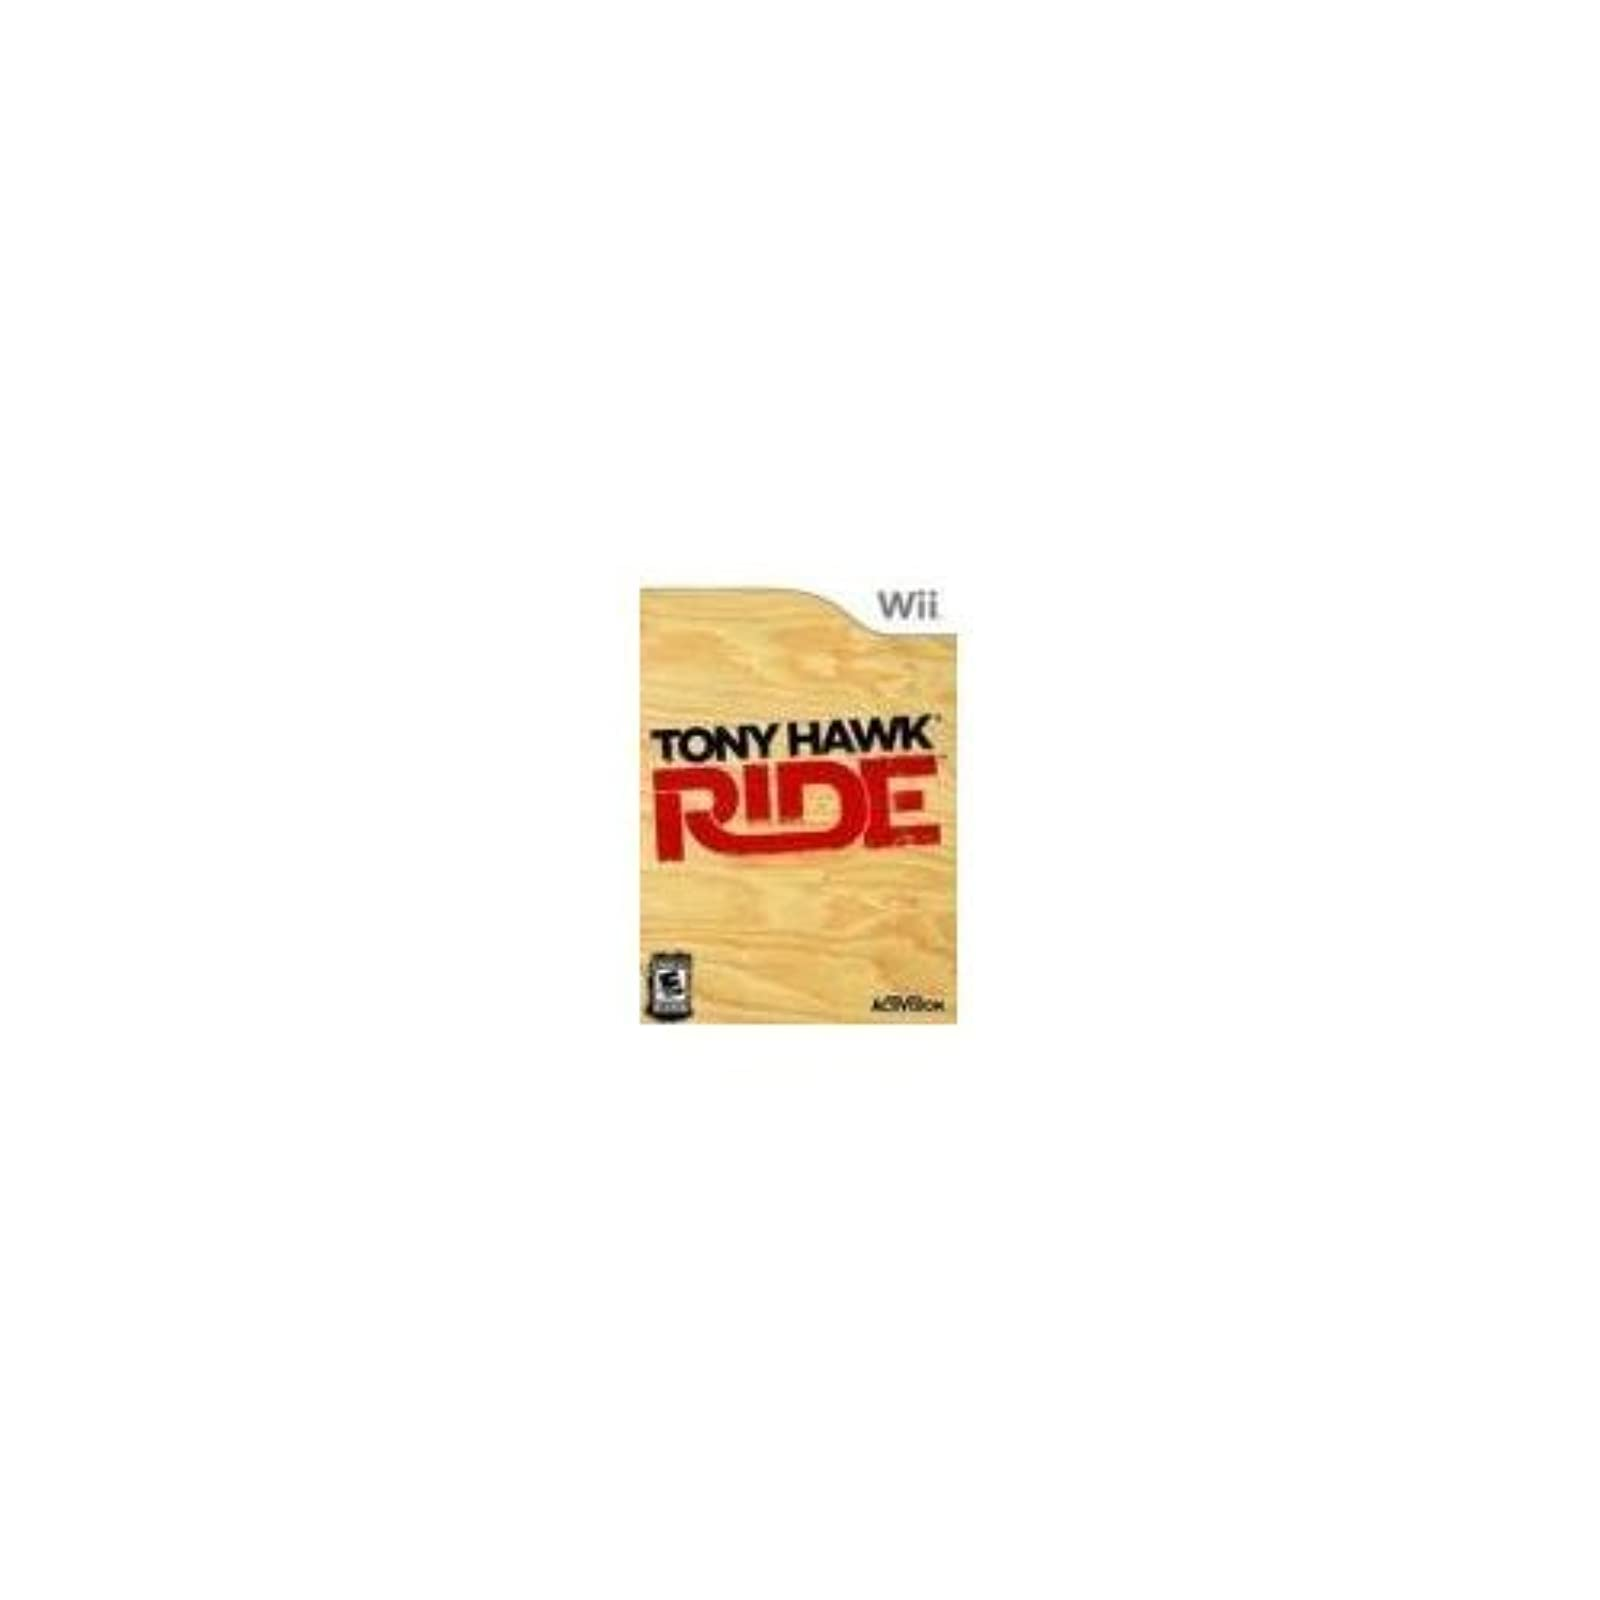 Tony Hawk Ride For Wii And Wii U